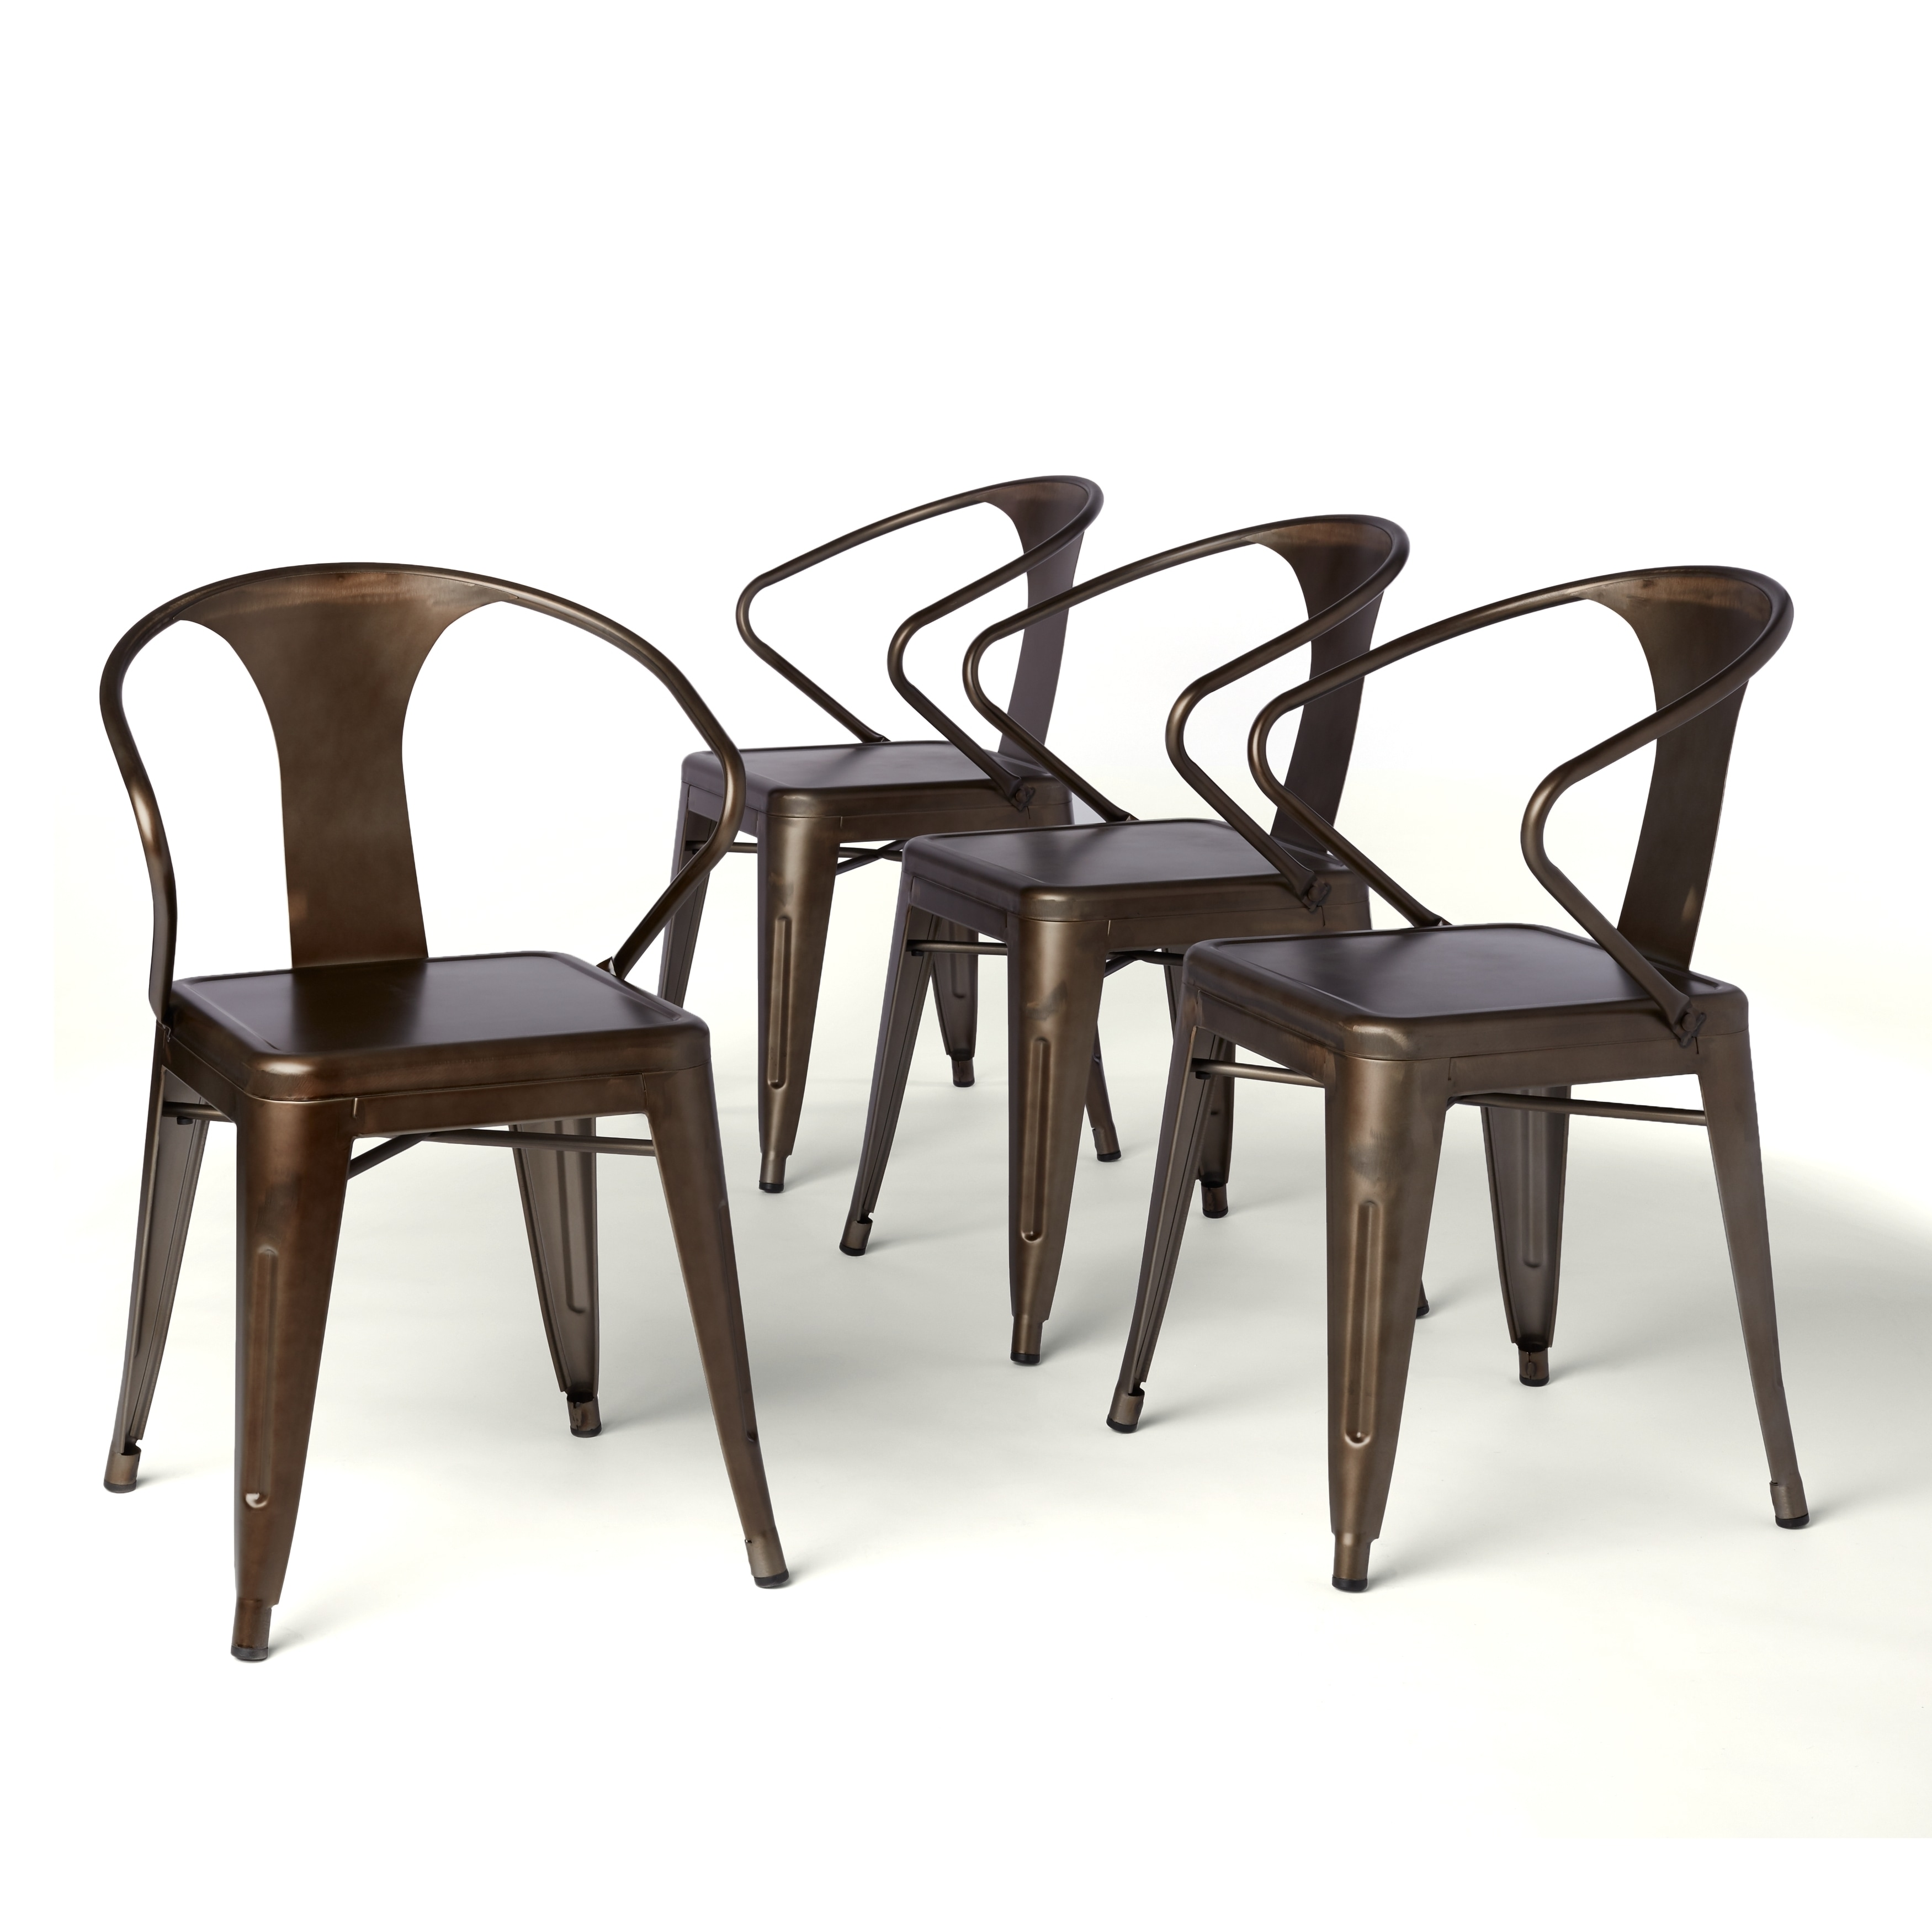 Shop Tabouret Vintage Tabouret Stacking Chairs Set Of 4 Free